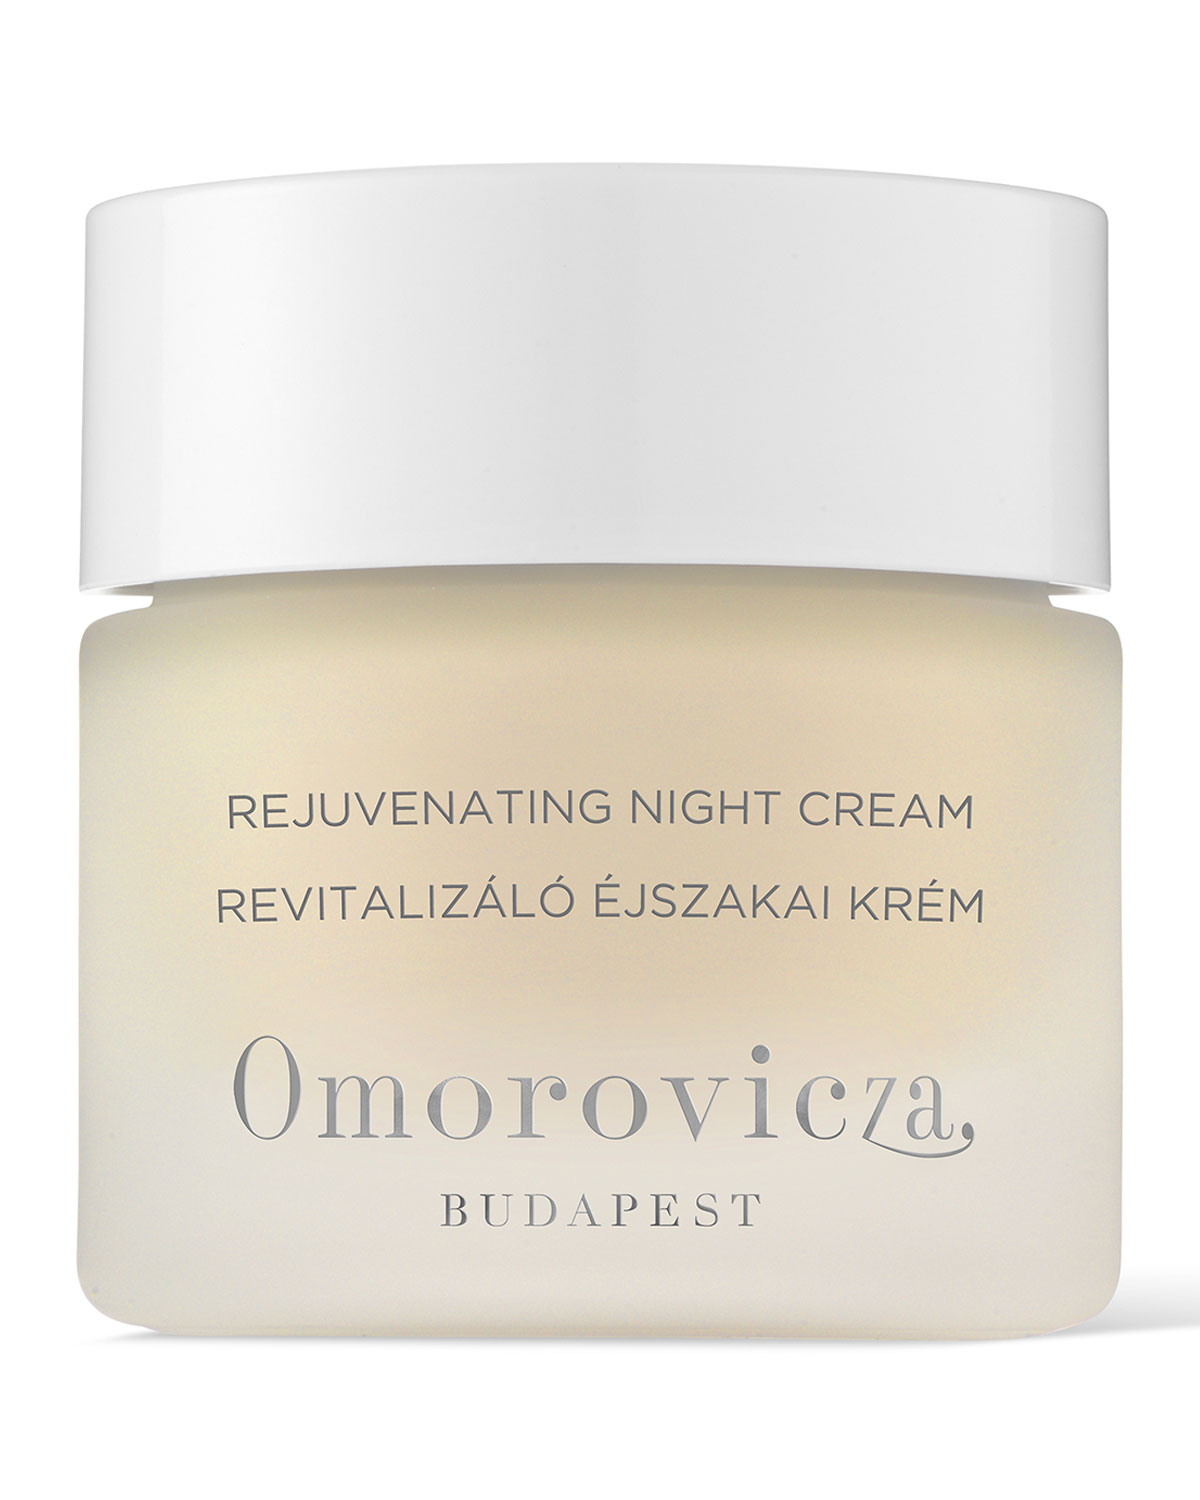 Omorovicza 1.7 oz. Rejuvenating Night Cream